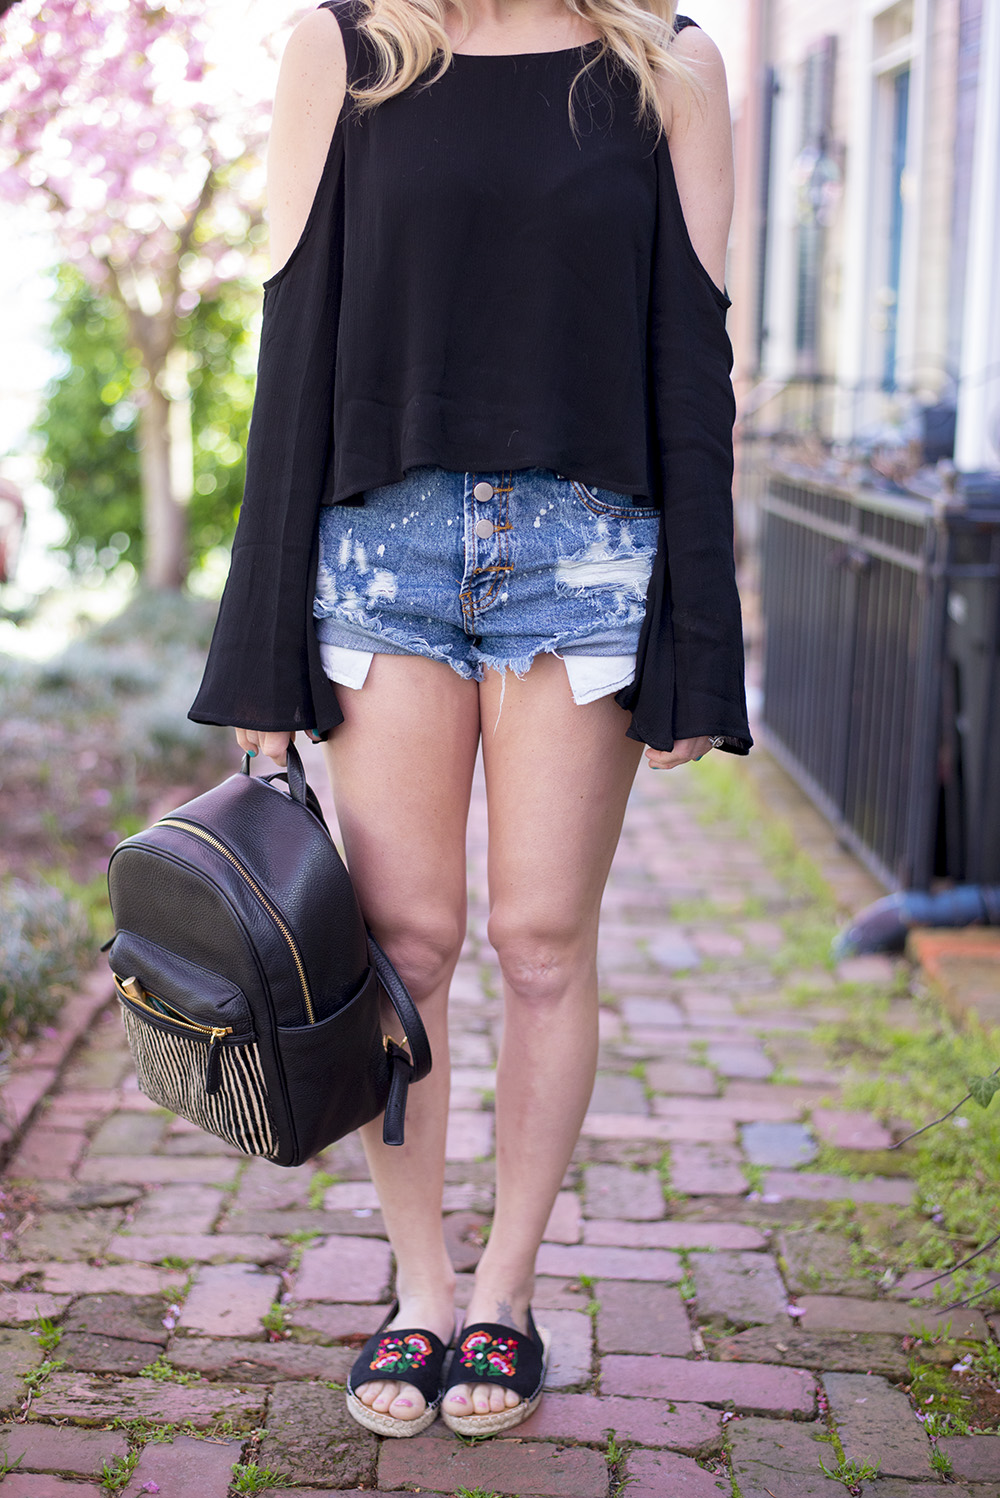 Real mom fashion: denim shorts and tops are life during spring and summer. Casual enough to wear while at the park with the kids but still cute and trendy enough to make you feel confident.